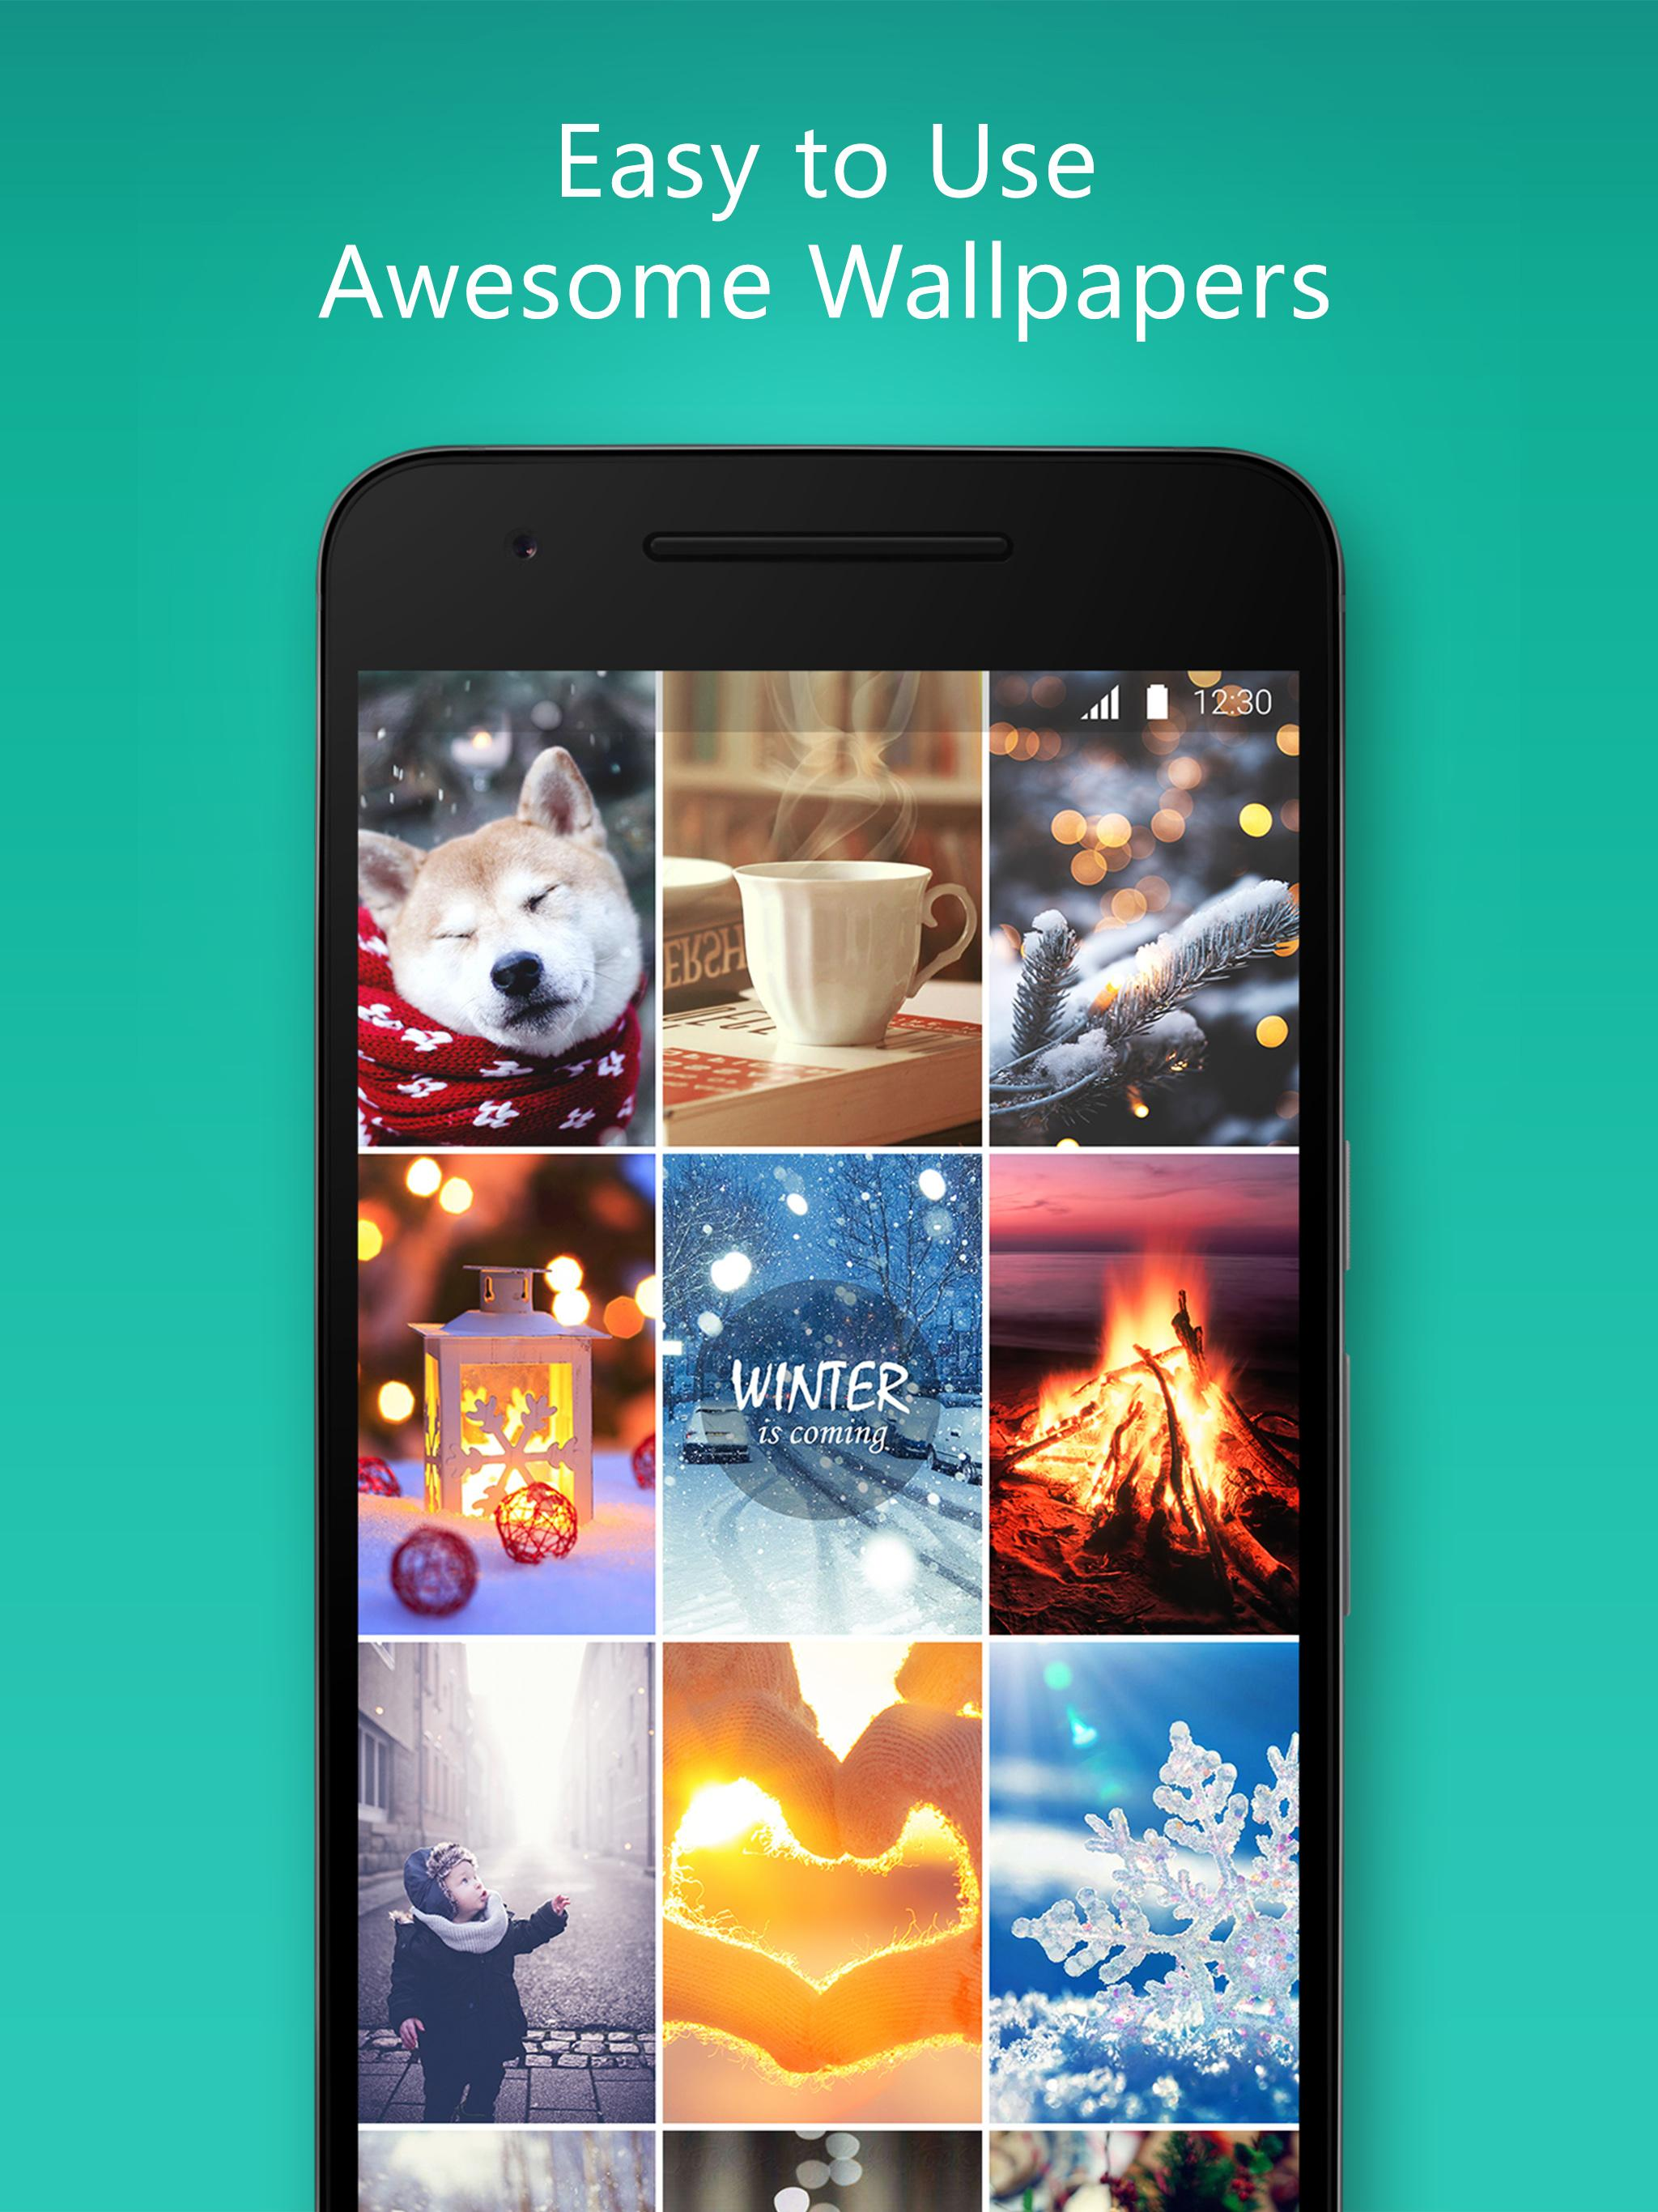 10 000 Wallpapers Free Download